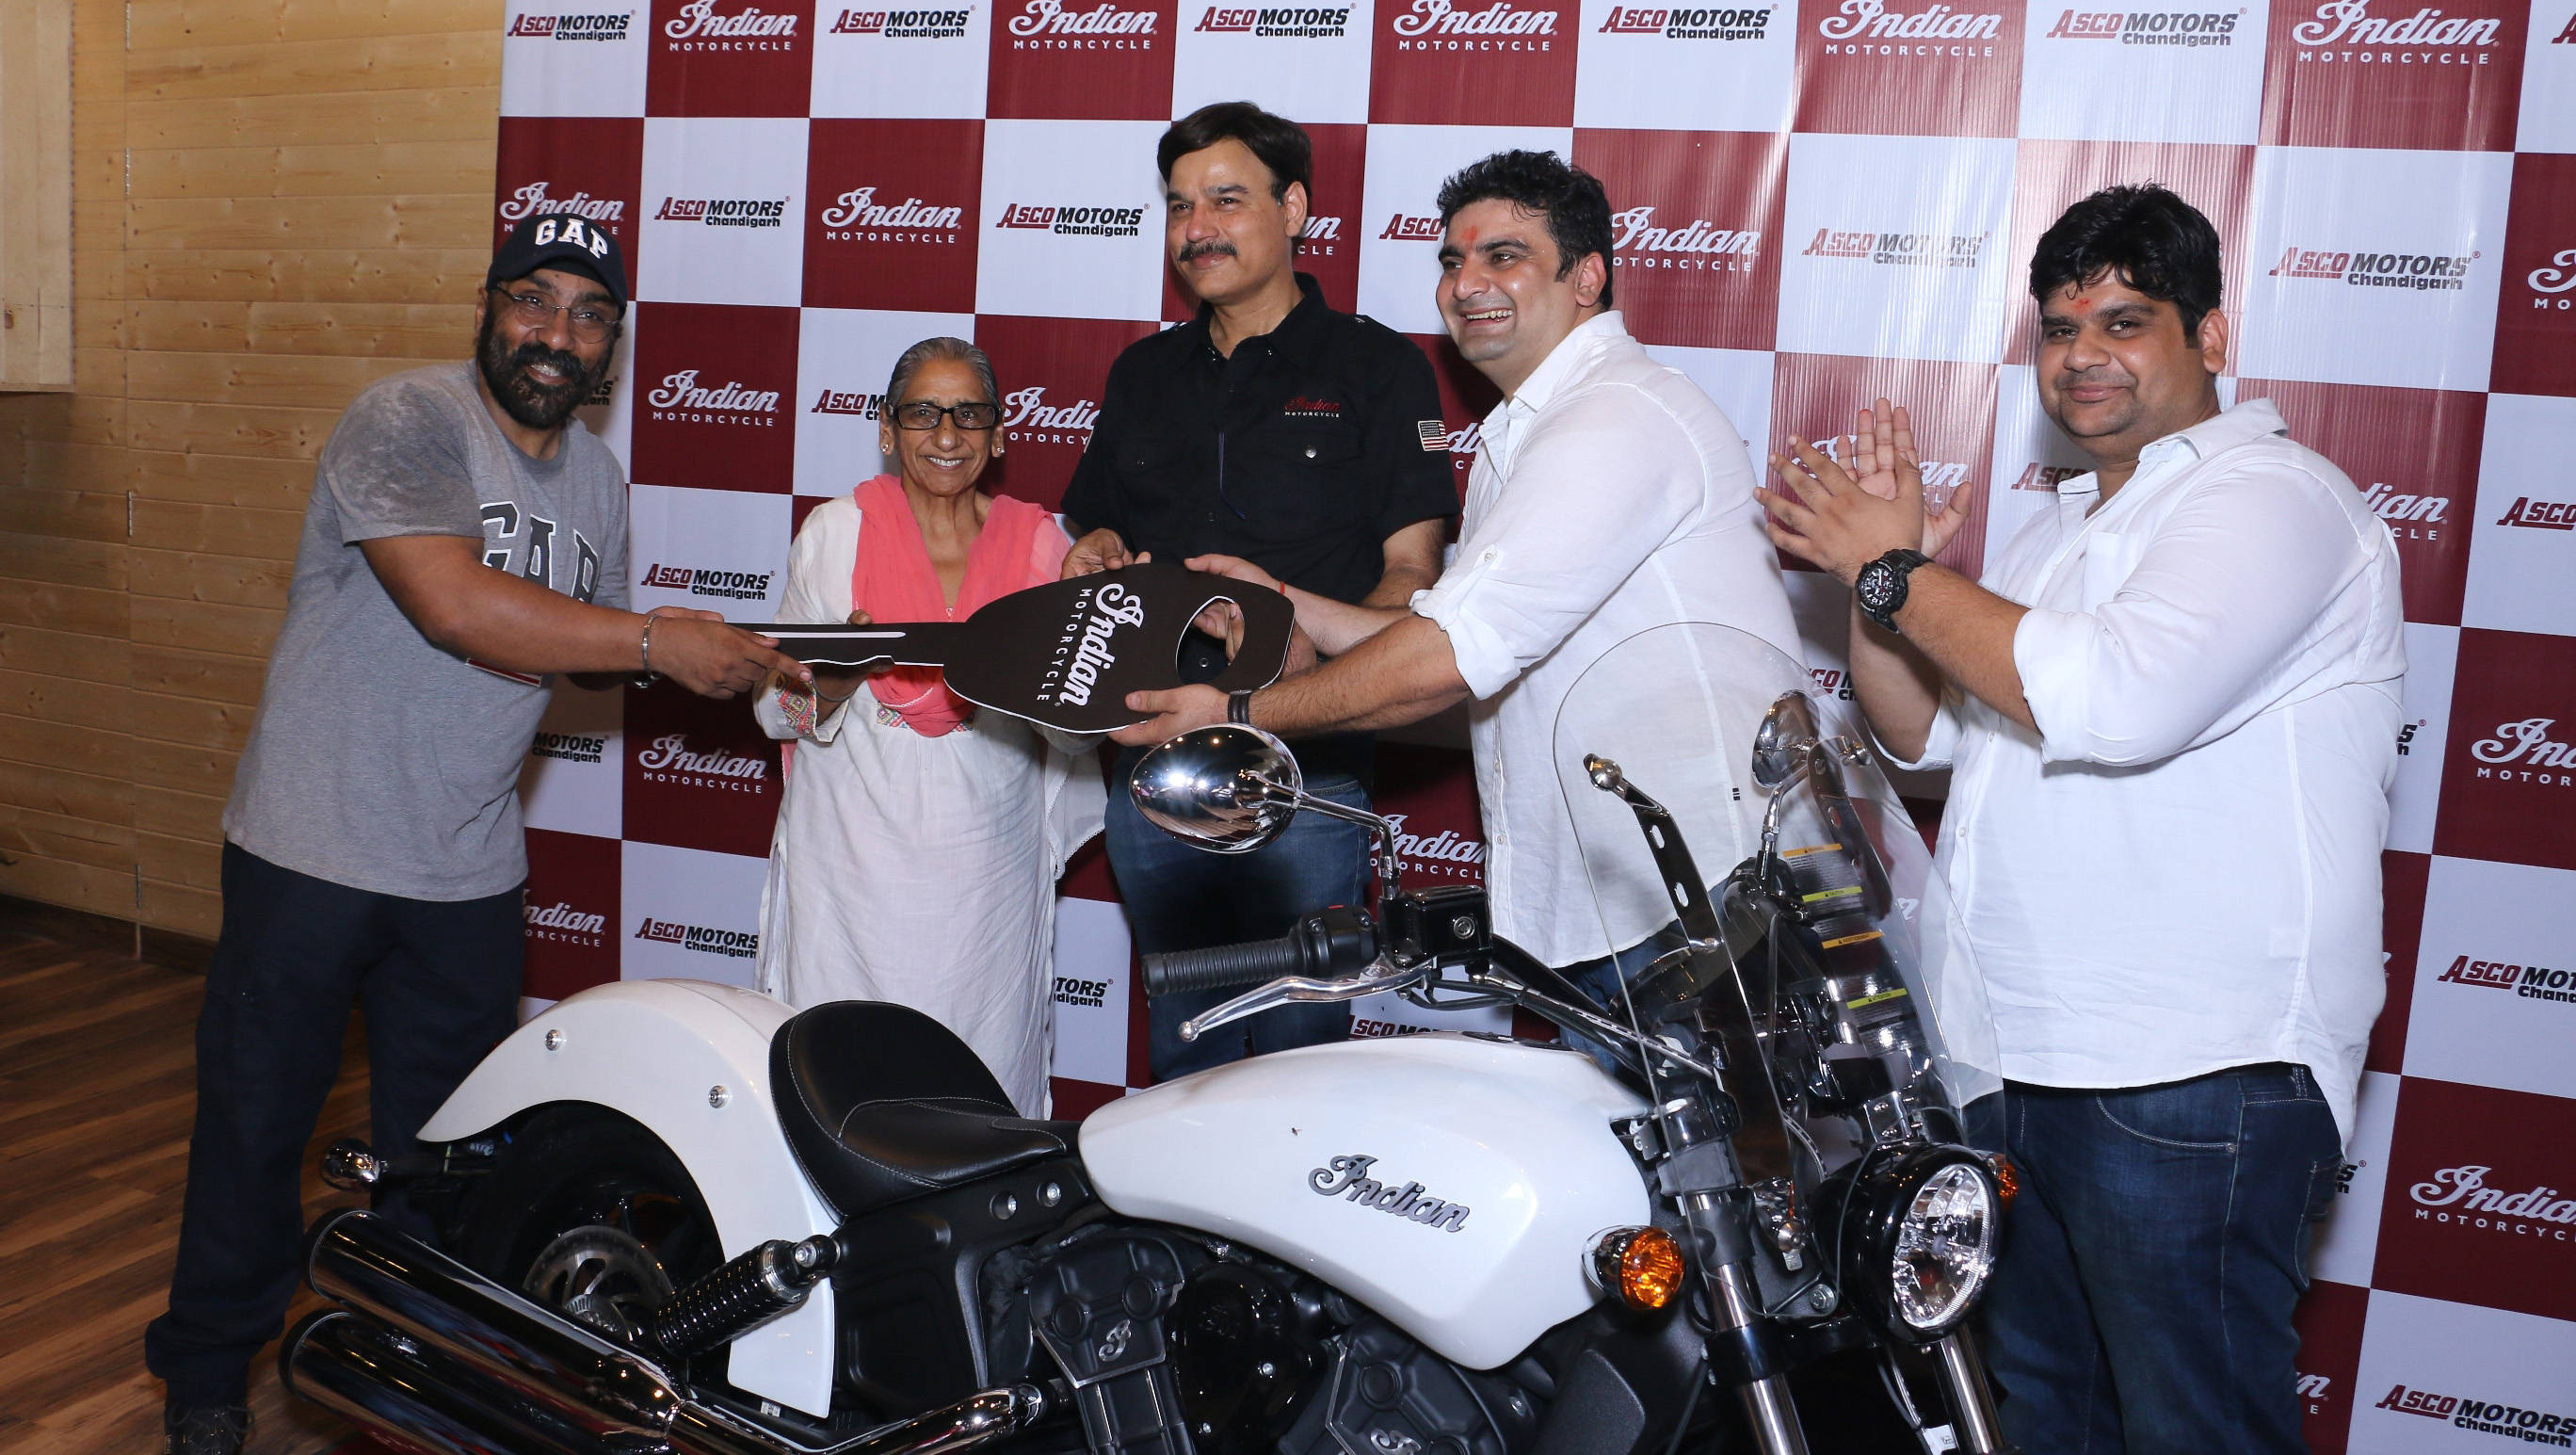 Mr. Pankaj Dubey, MD & Country Head, Polaris India handing over keys of the Indian Scout to its customer, Mr. Manish Jain